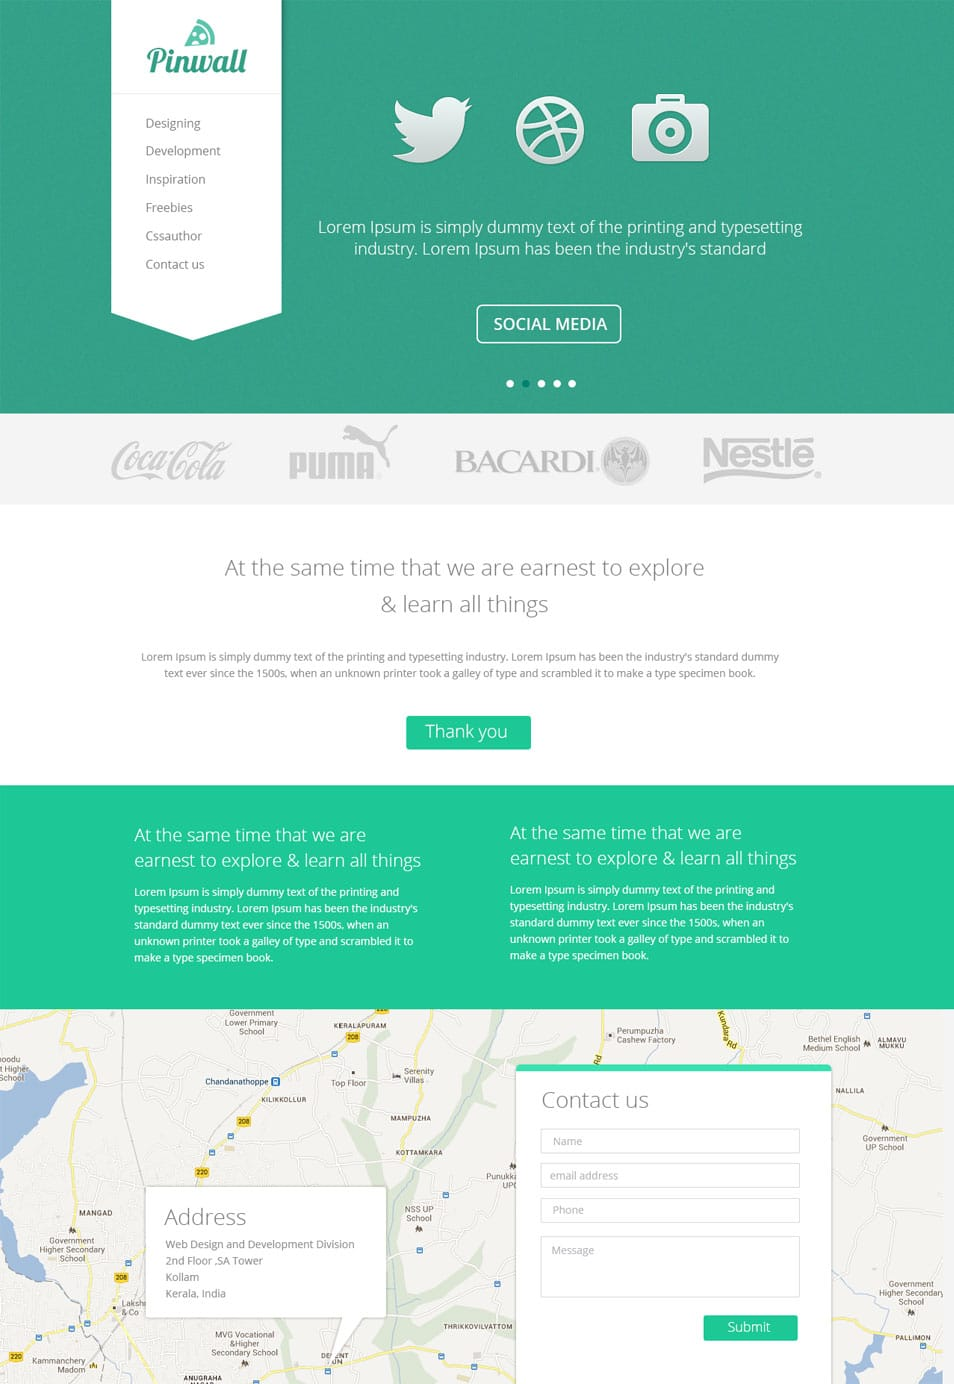 Pinwall – Modern Website Template PSD - cssauthor.com